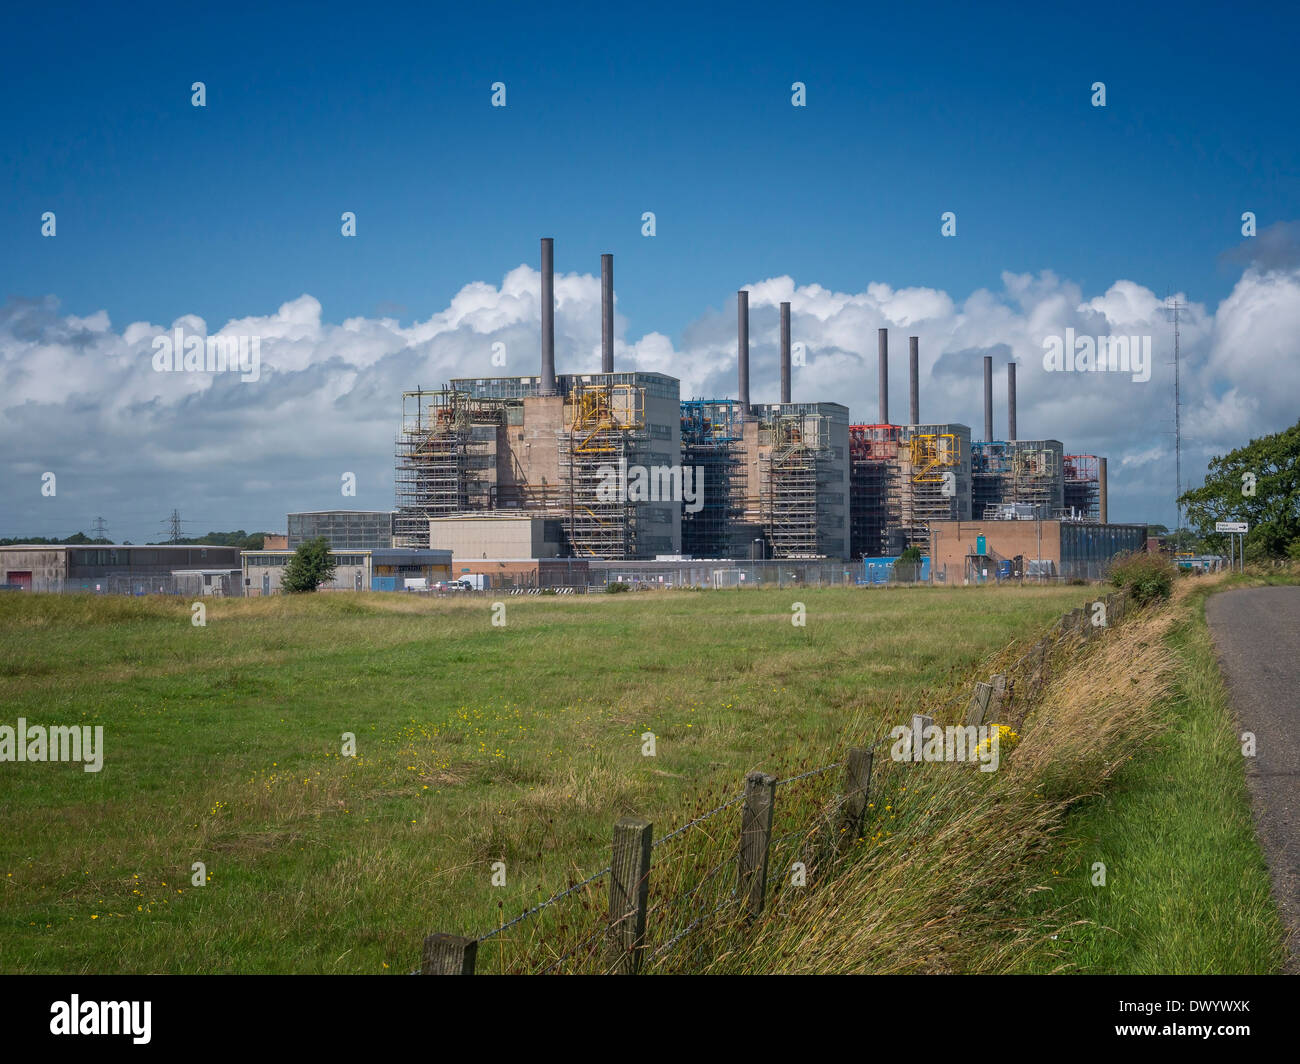 The Chapelcross nuclear power station, near Annan, Scotland. The four Magnox reactors on the site are being decommissioned. - Stock Image